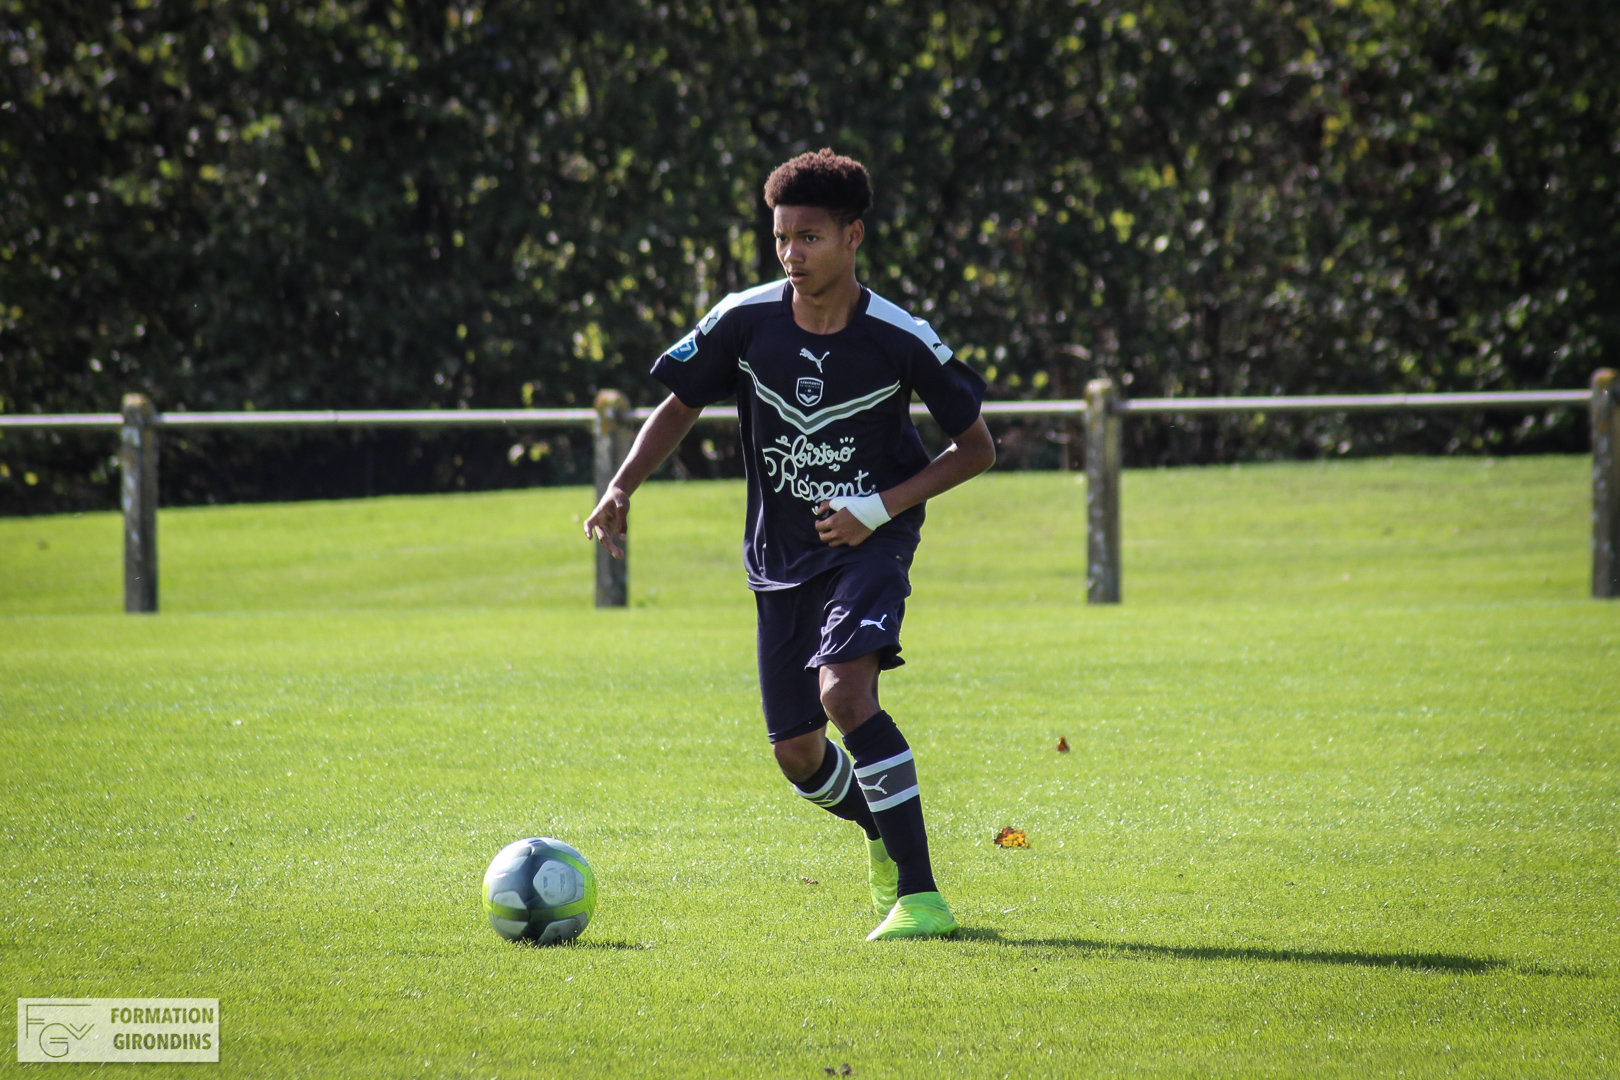 Cfa Girondins : Large victoire dans le derby - Formation Girondins